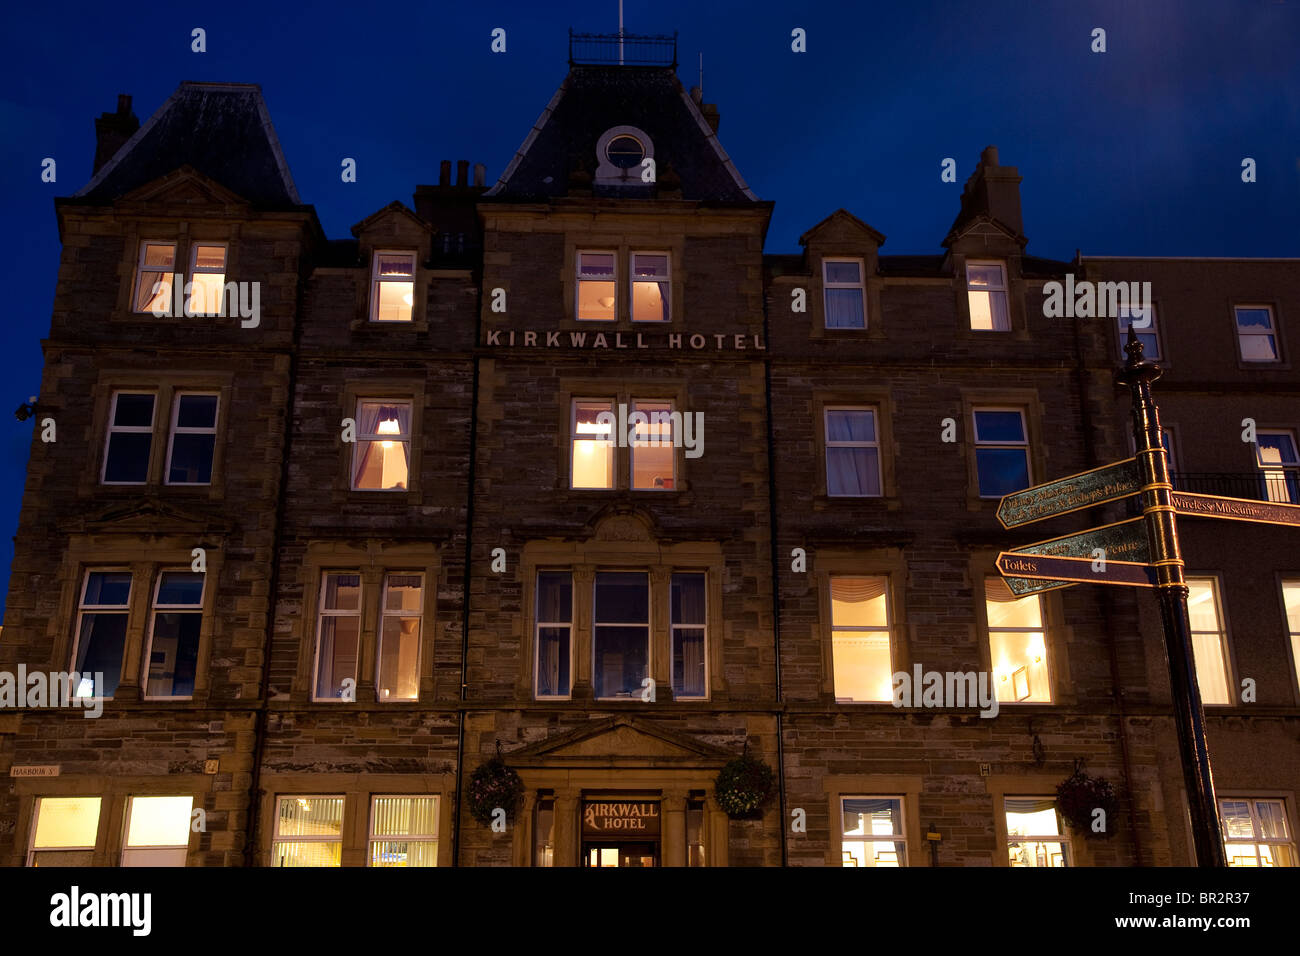 Kirkwall Hotel, Orkney Islands in Scotland Illuminated at Night - Stock Image